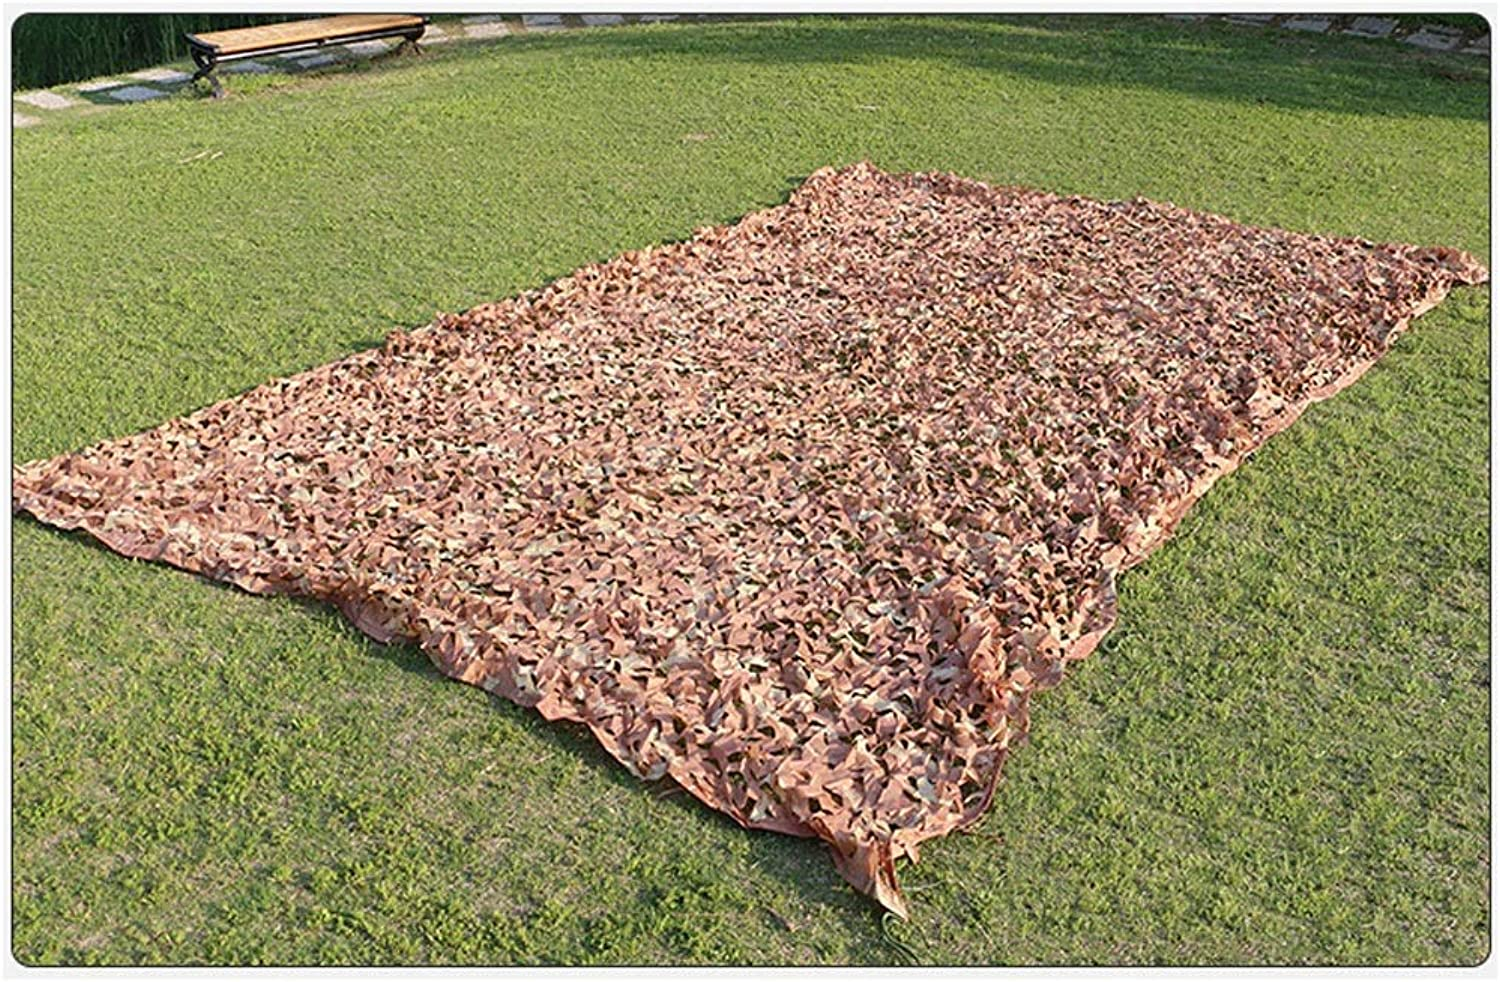 ATR Camouflage Net, Oxford Cloth is Dense and Sturdy, Suitable for Outdoor Camping Sunscreen and Garden Decoration, Desert Camouflage color